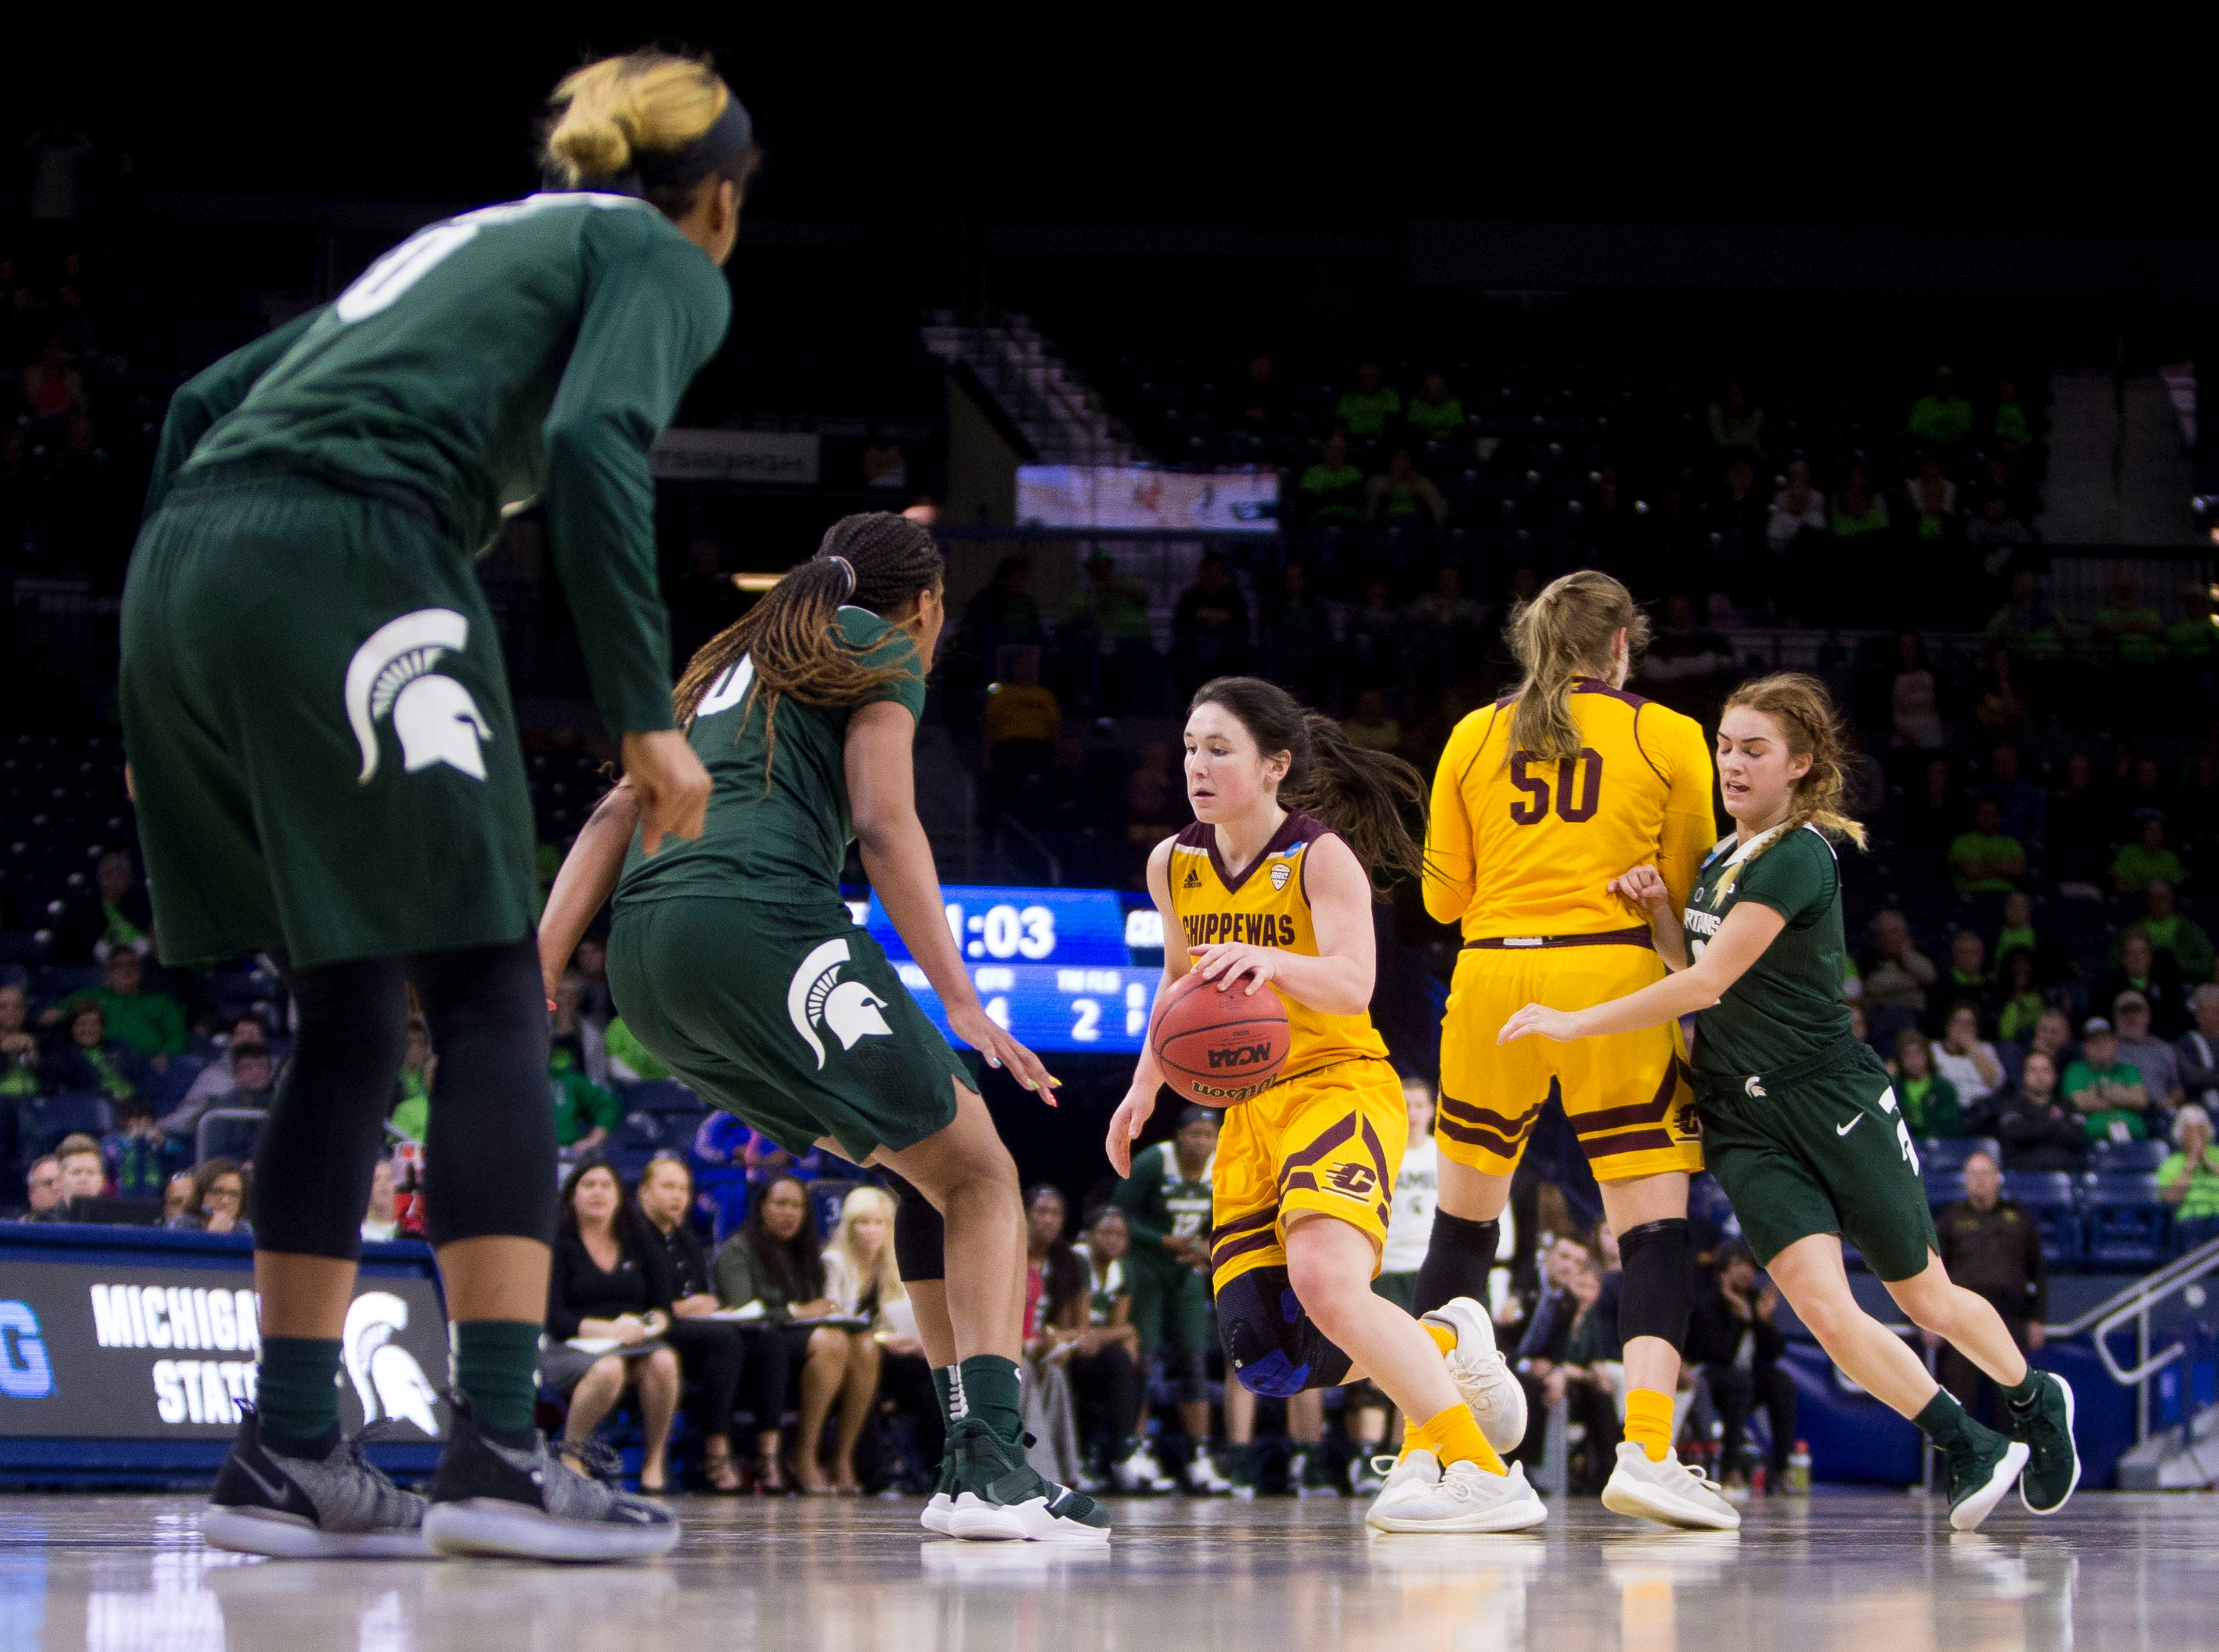 Central Michigan's Presley Hudson, center, drives in as Michigan State's Sidney Cooks (10) defends during a first-round game in the NCAA women's college basketball tournament in South Bend, Ind., Saturday, March 23, 2019. Michigan State won 88-87.